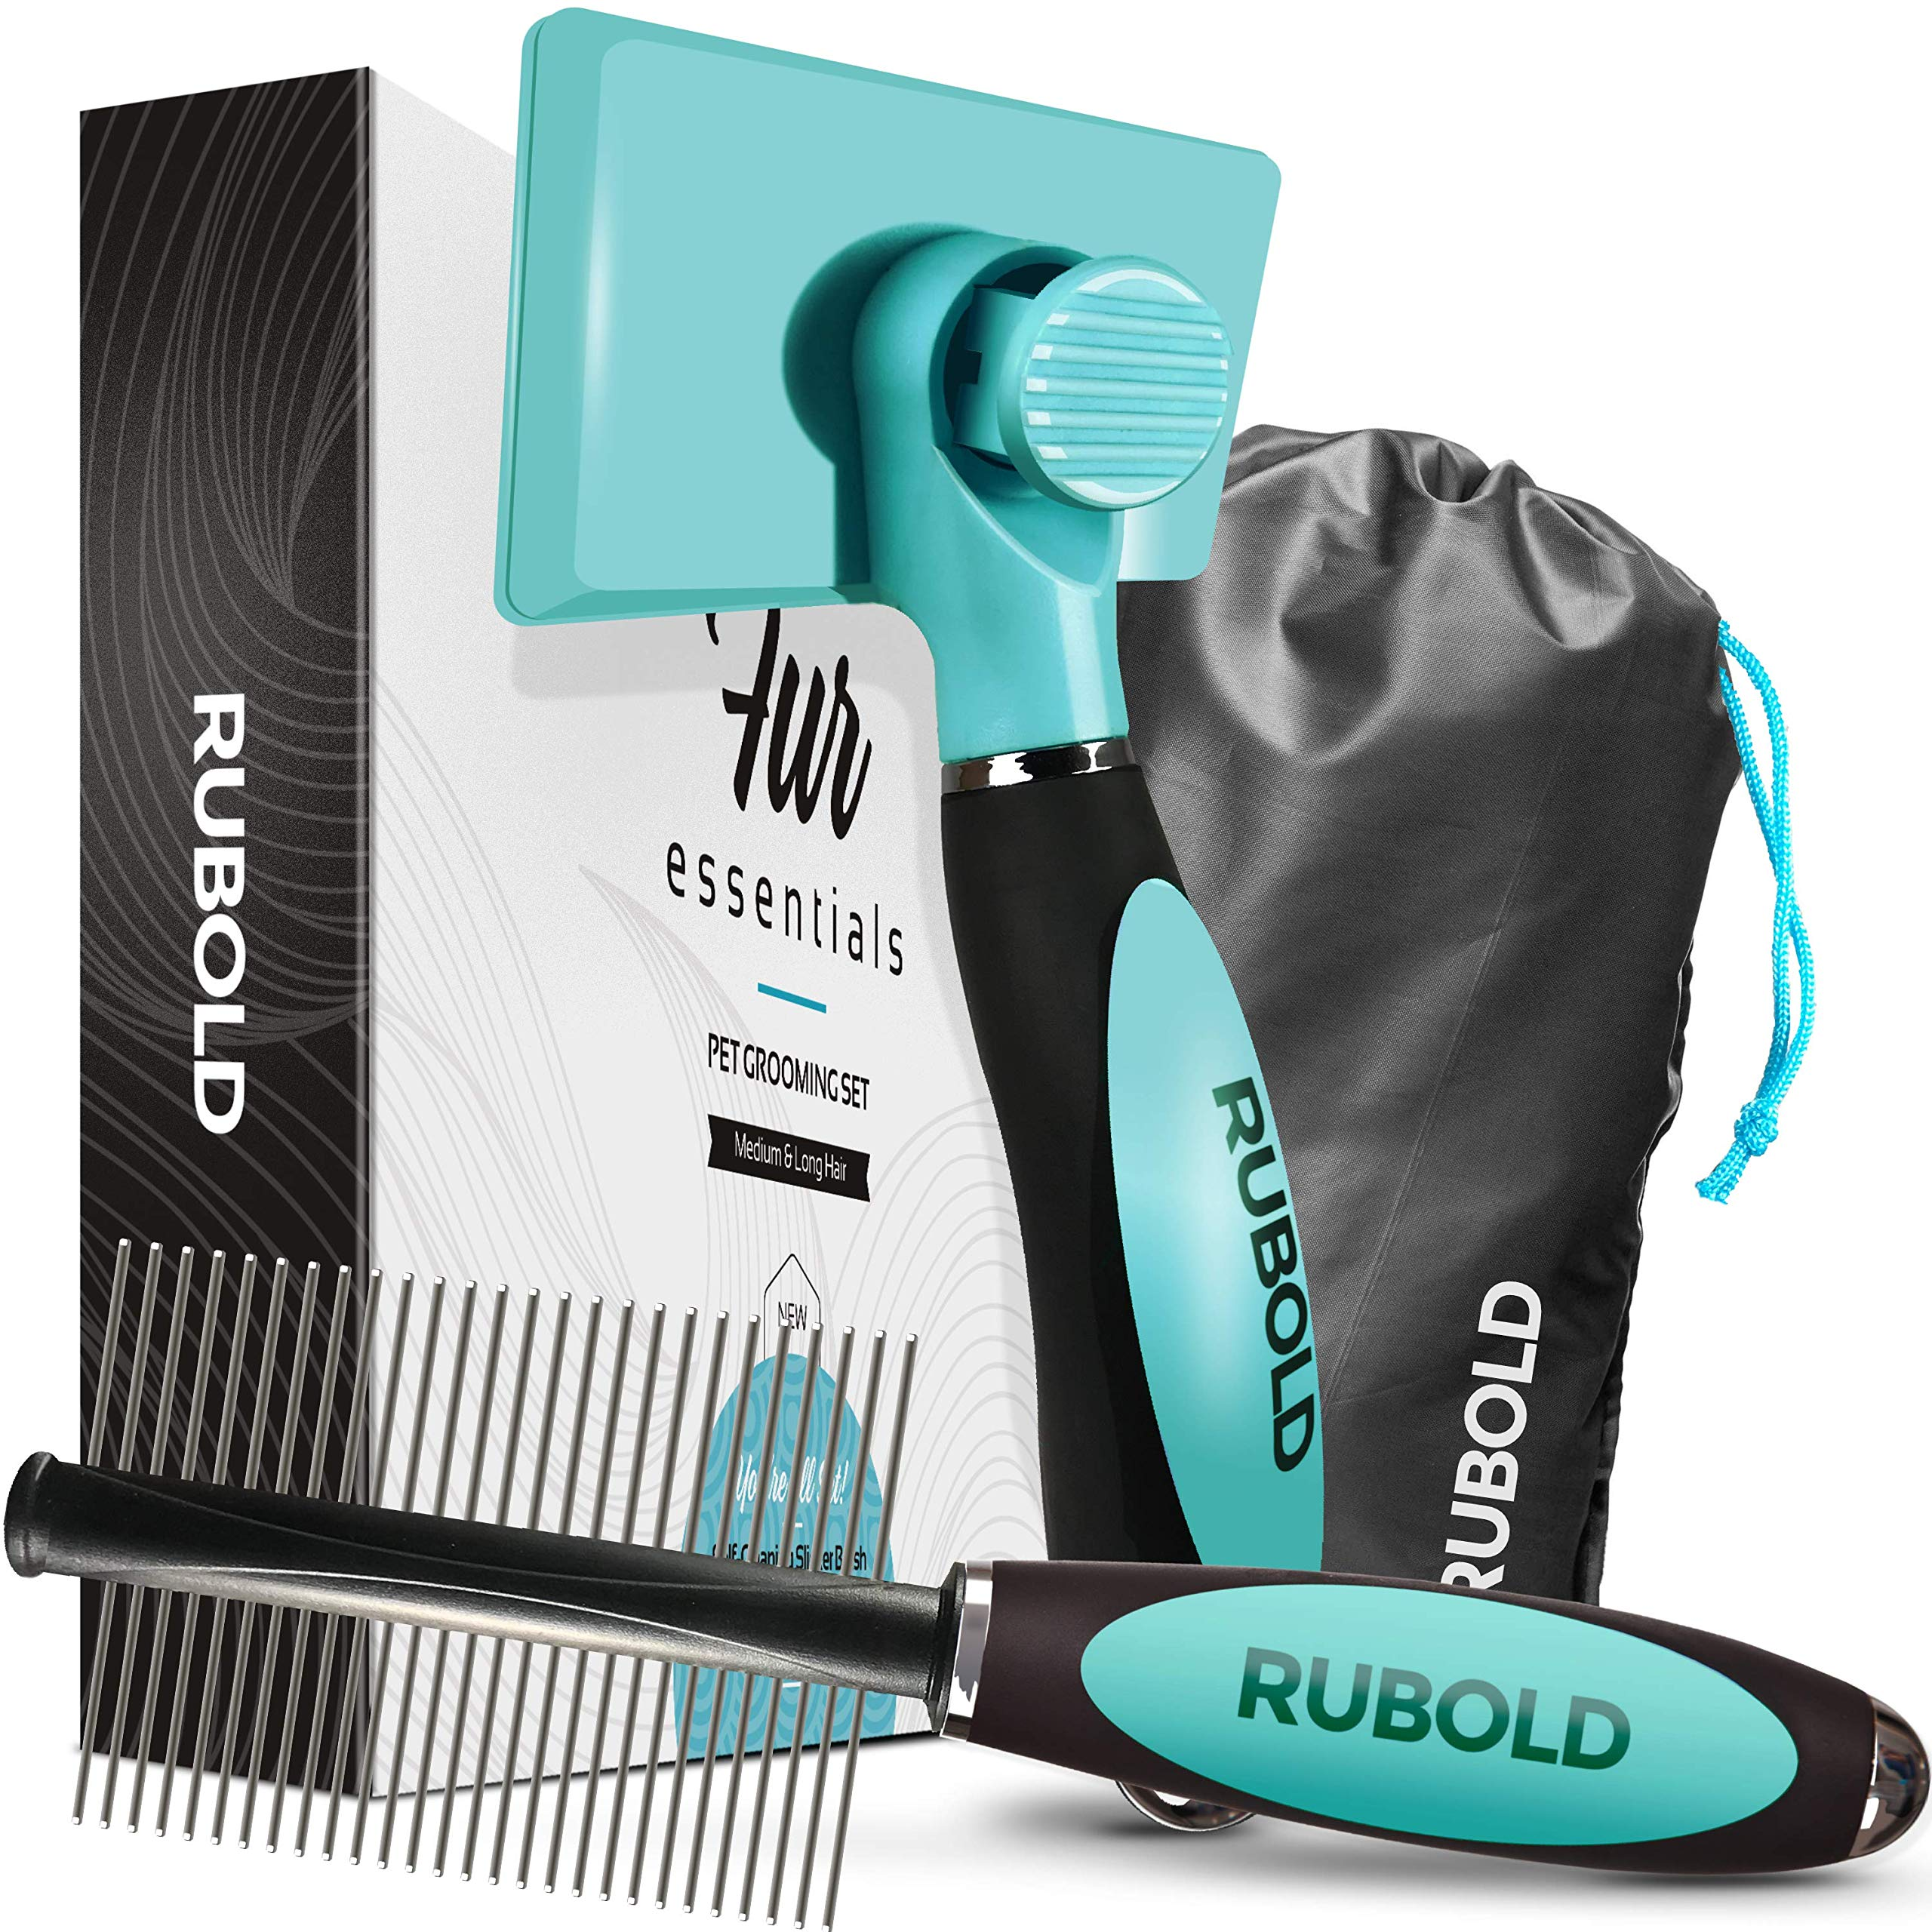 RUBOLD Dog Grooming Kit - Slicker Brush for Dogs with Fur Ejector - Greyhound Dog Comb - with Bonus Carrying Case - The Best Brushes for Shedding - Suitable for Any Medium or Long Hair Pet or Cat